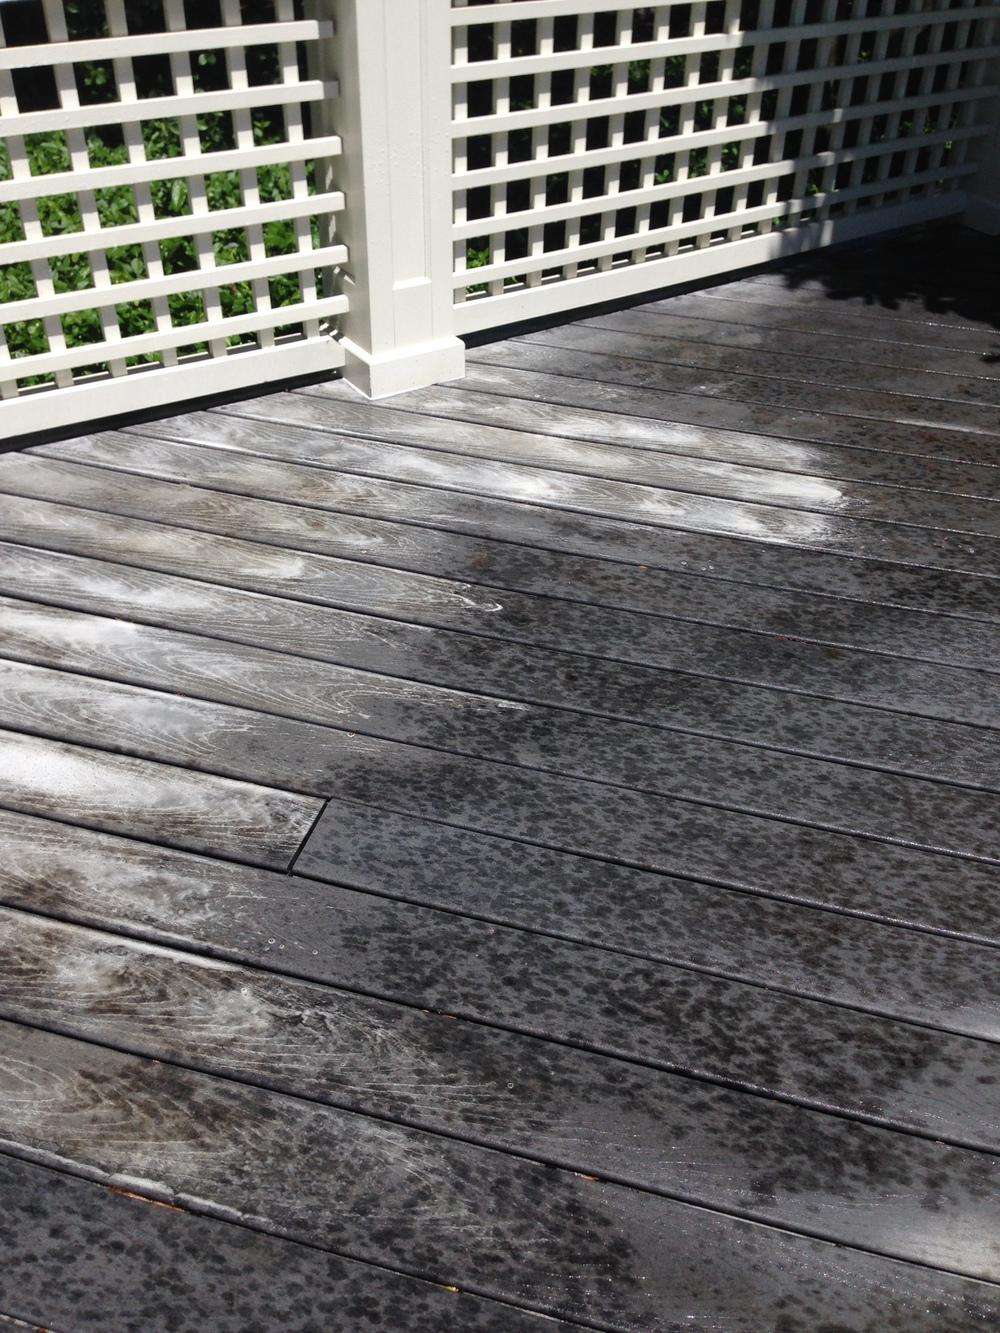 trex decking and mold